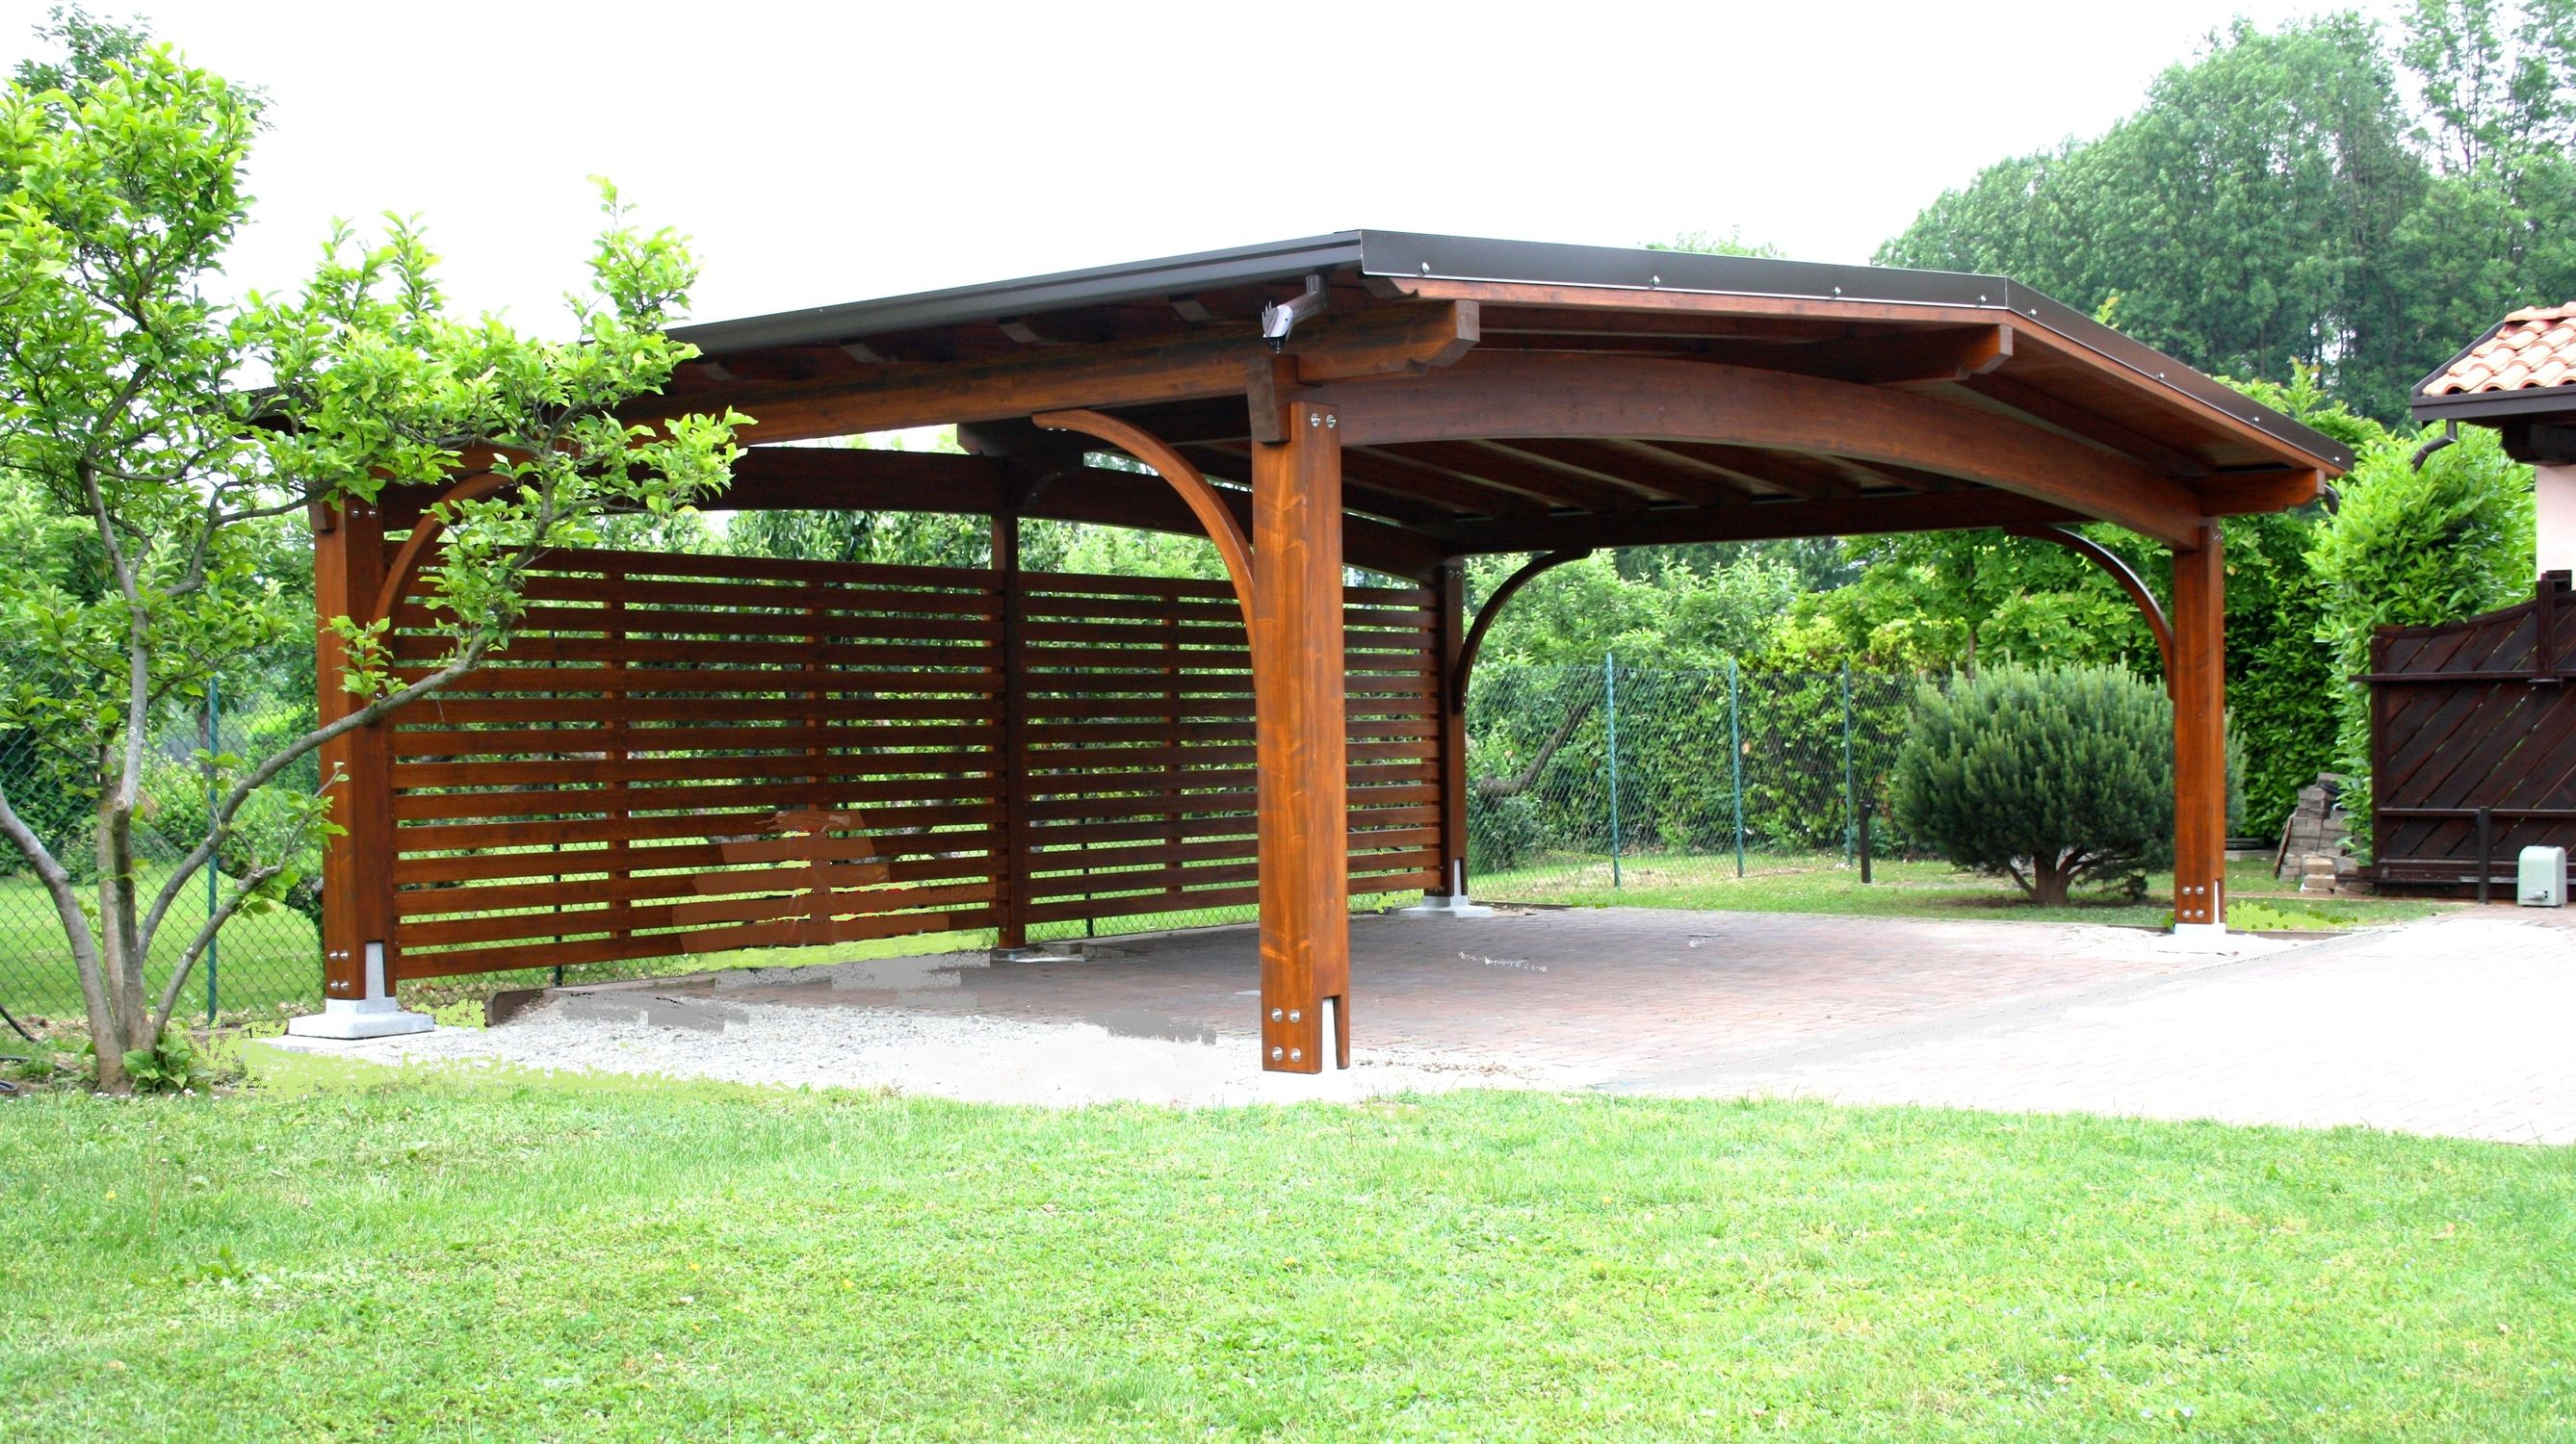 Wooden carport - ARCO - Gazebodesign